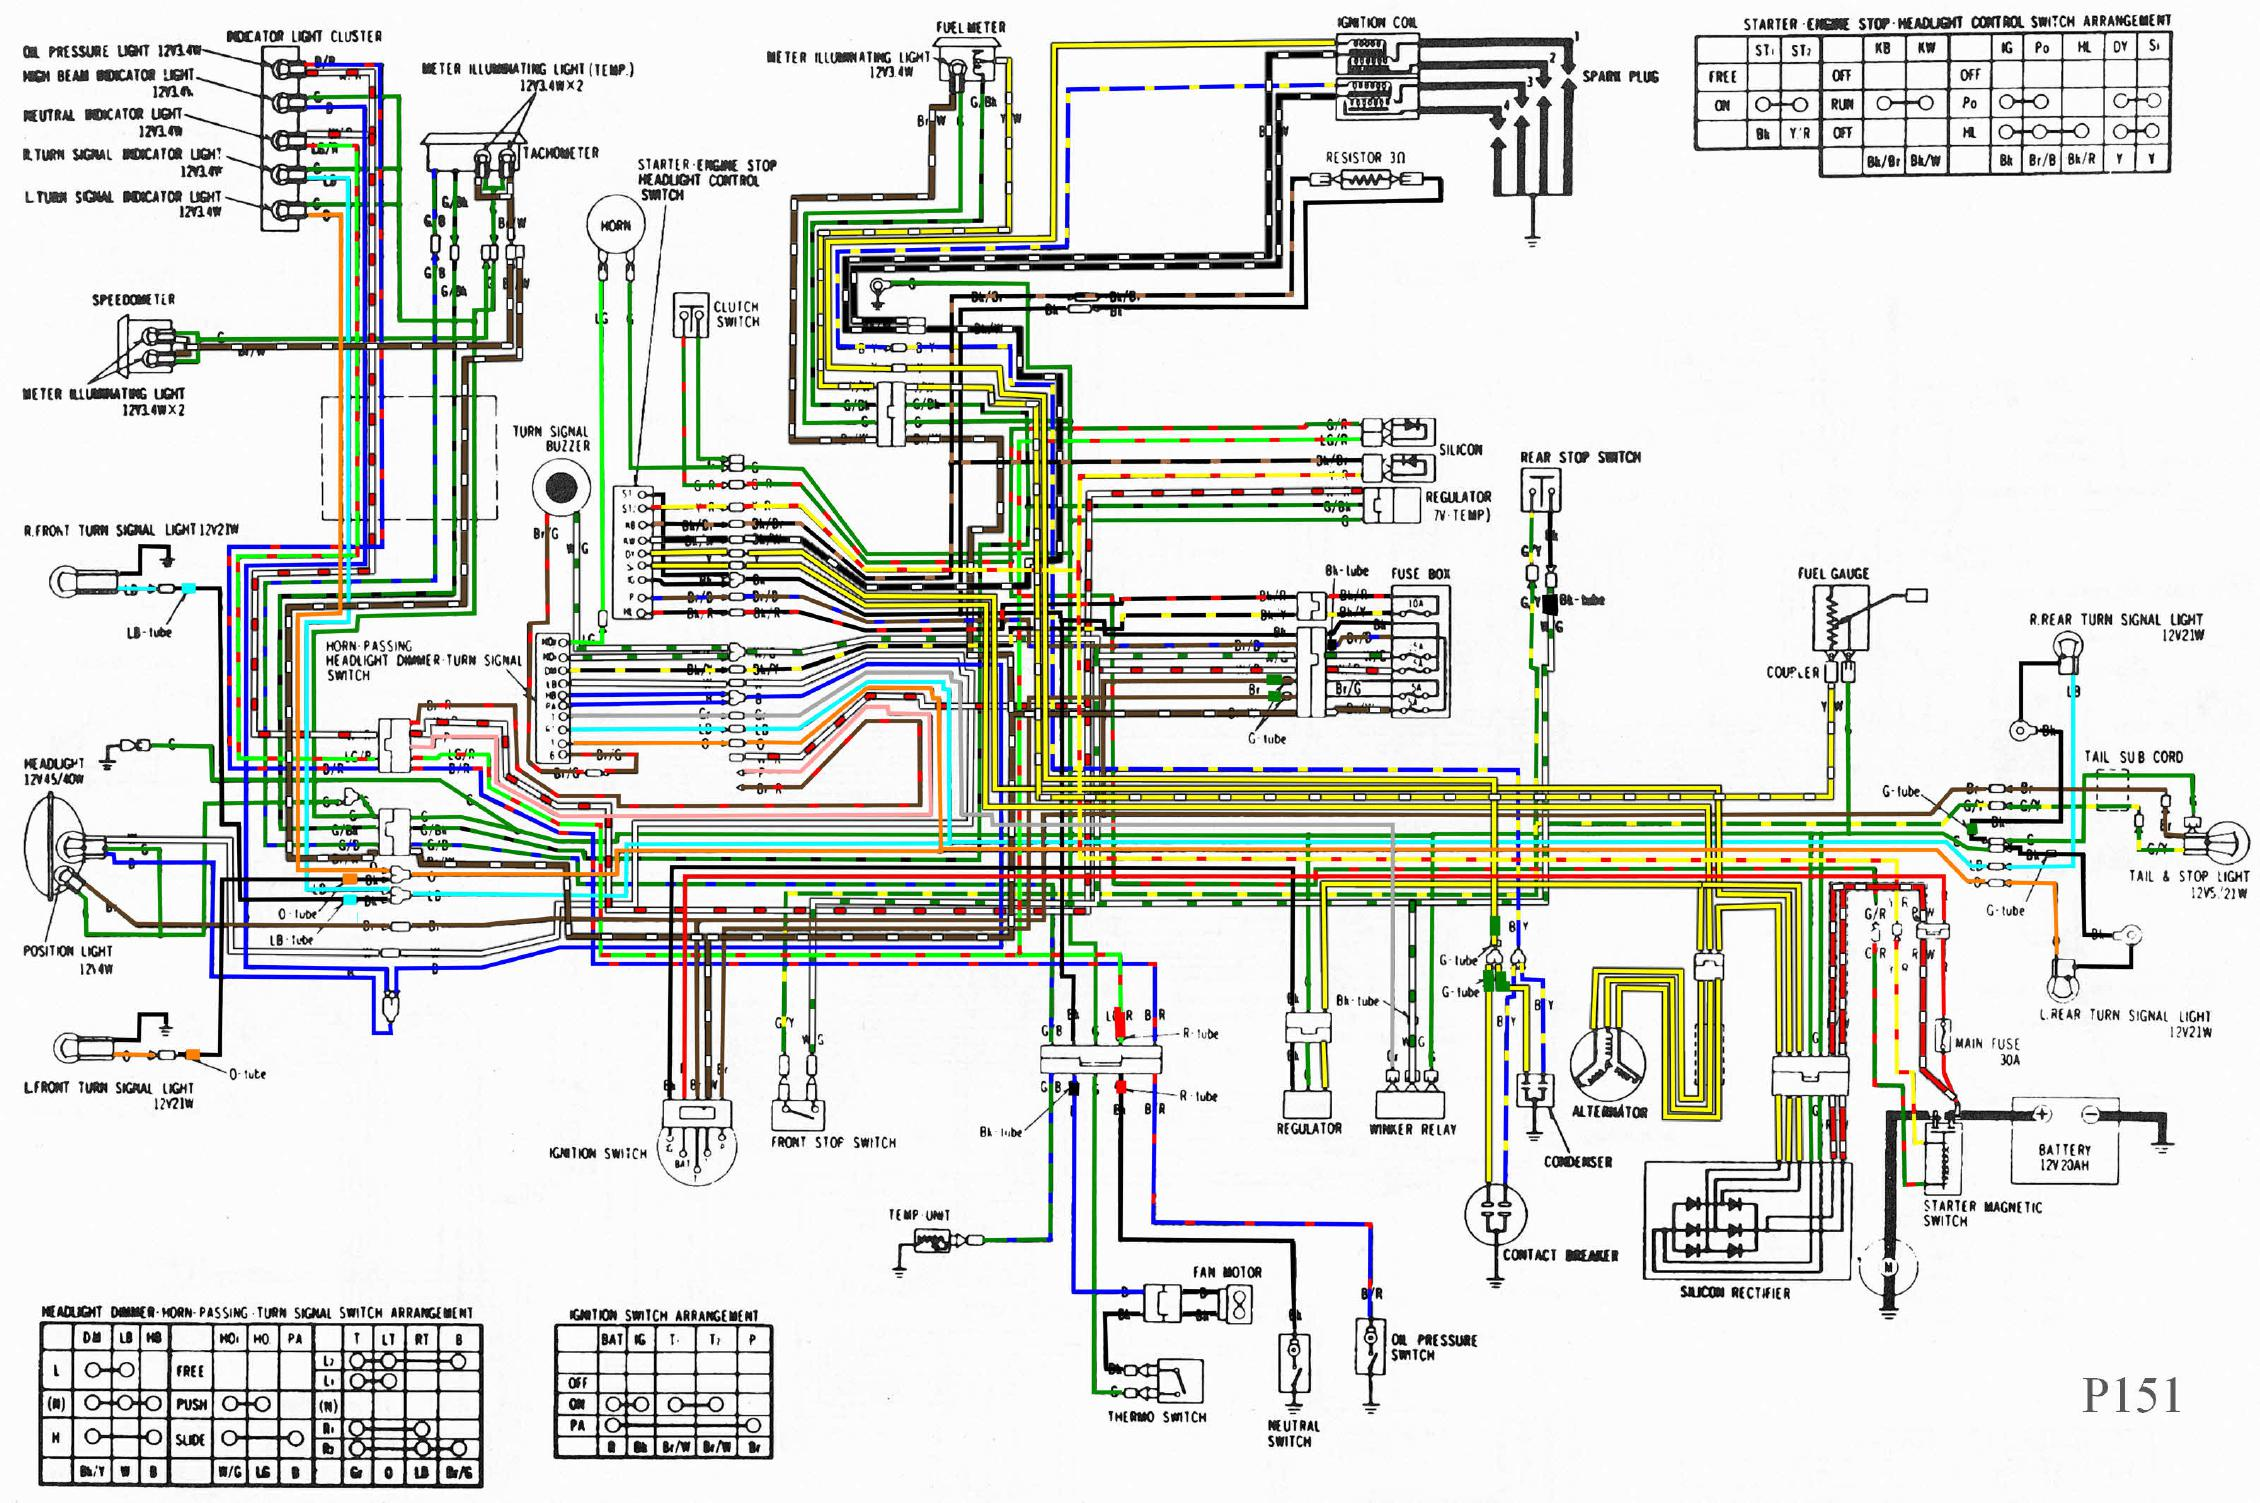 Goldwing 75 to 77 UK wiring diagram coloured_1?m=1441115504 goldwing 75 to 77 uk wiring diagram coloured 1 goldwing wiring diagram at crackthecode.co